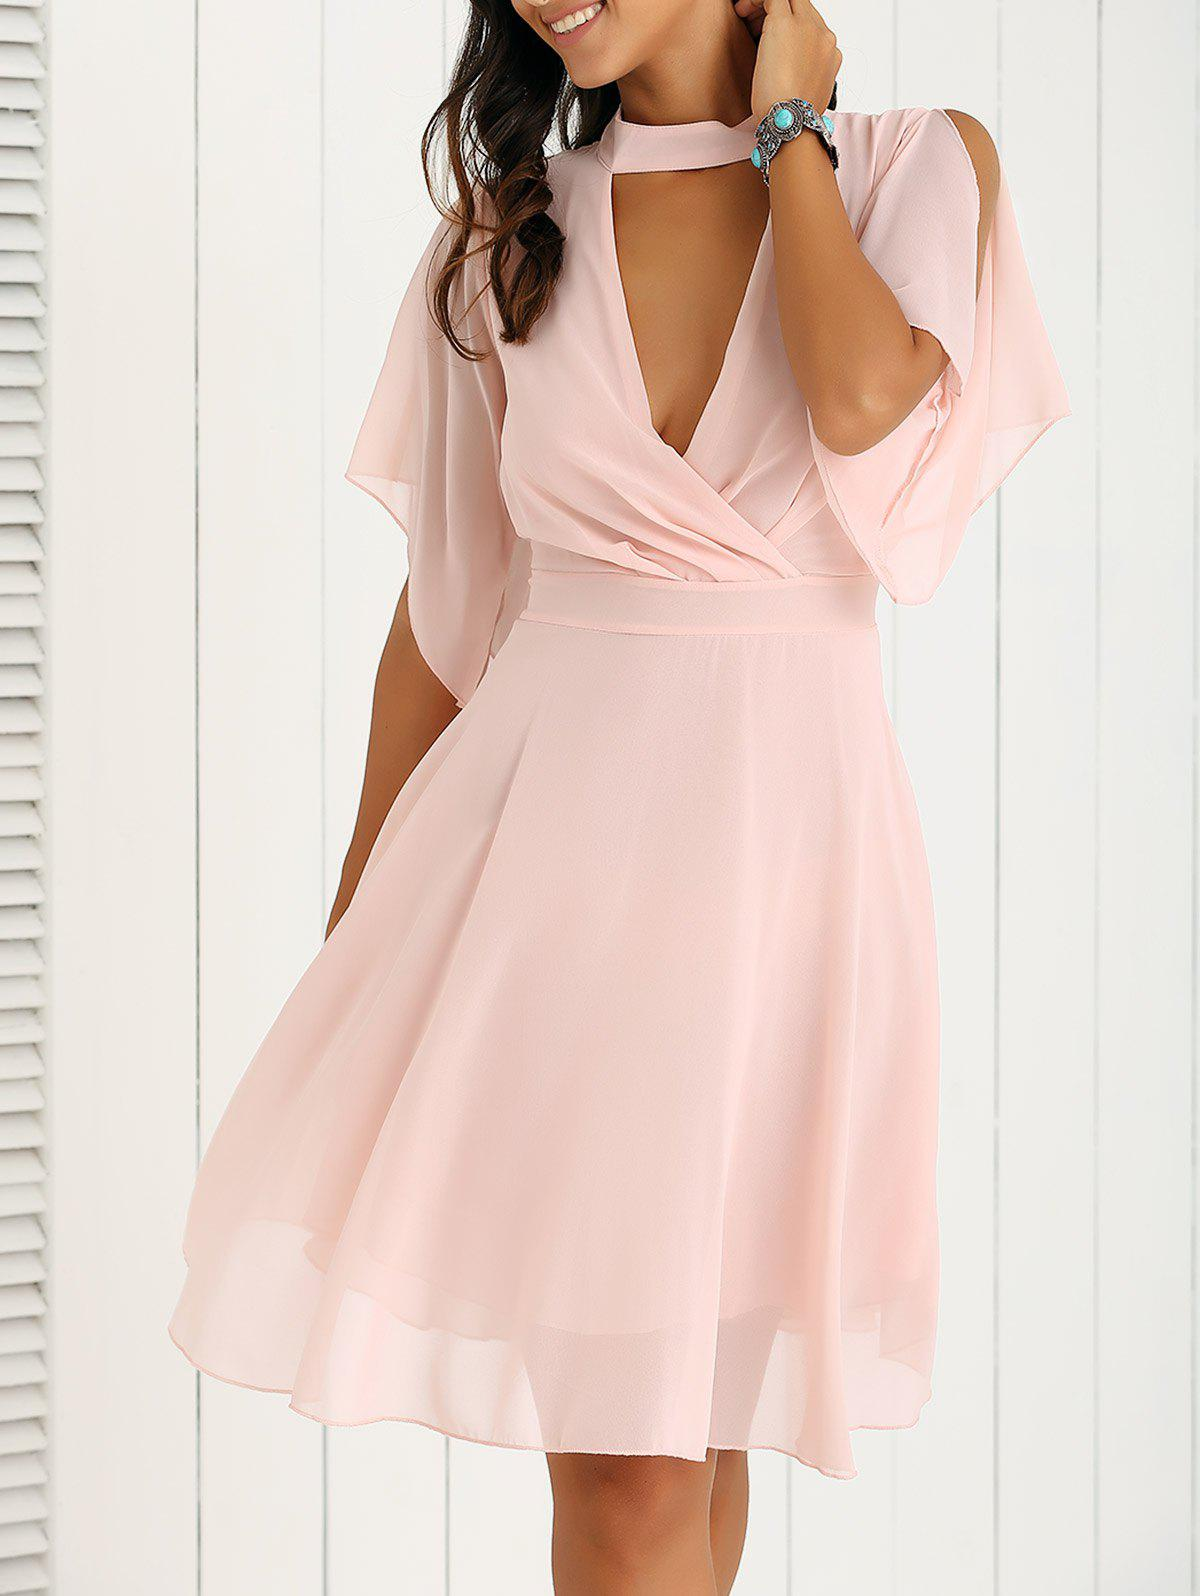 Petal Sleeve Knee Length Chiffon Pastel Pleated DressWOMEN<br><br>Size: XL; Color: PINK; Style: Casual; Material: Polyester; Silhouette: A-Line; Dresses Length: Knee-Length; Neckline: Keyhole Neck; Sleeve Length: Short Sleeves; Pattern Type: Solid; With Belt: No; Season: Summer; Weight: 0.216kg; Package Contents: 1 x Dress;